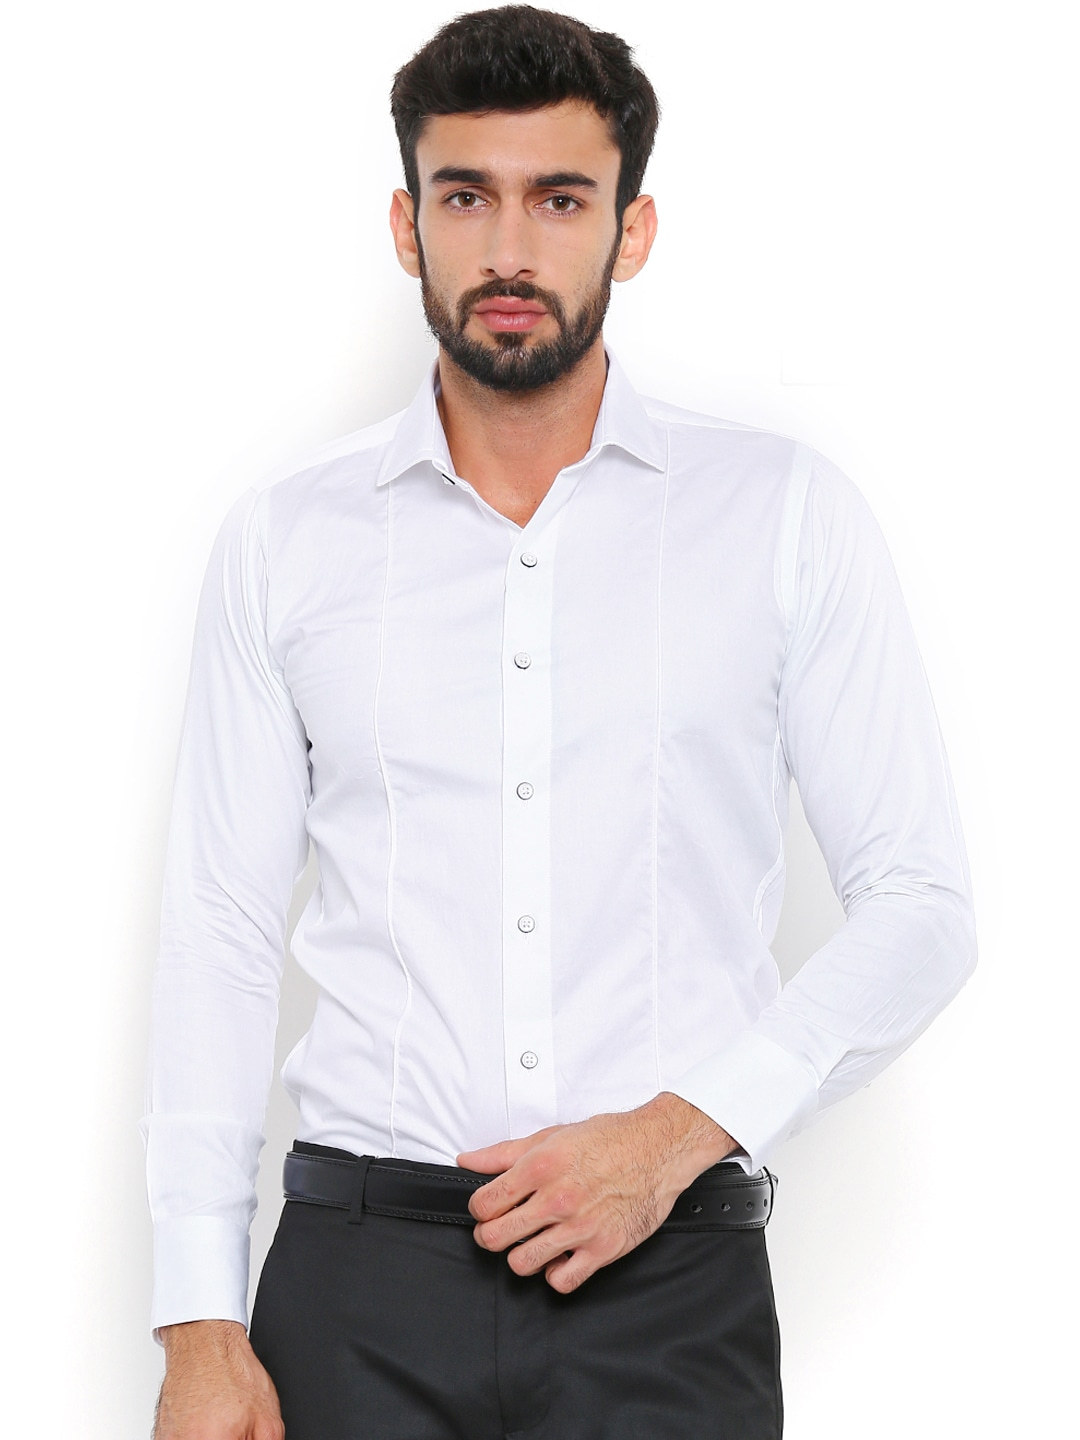 White shirt for men formal is shirt for Mens formal white shirts